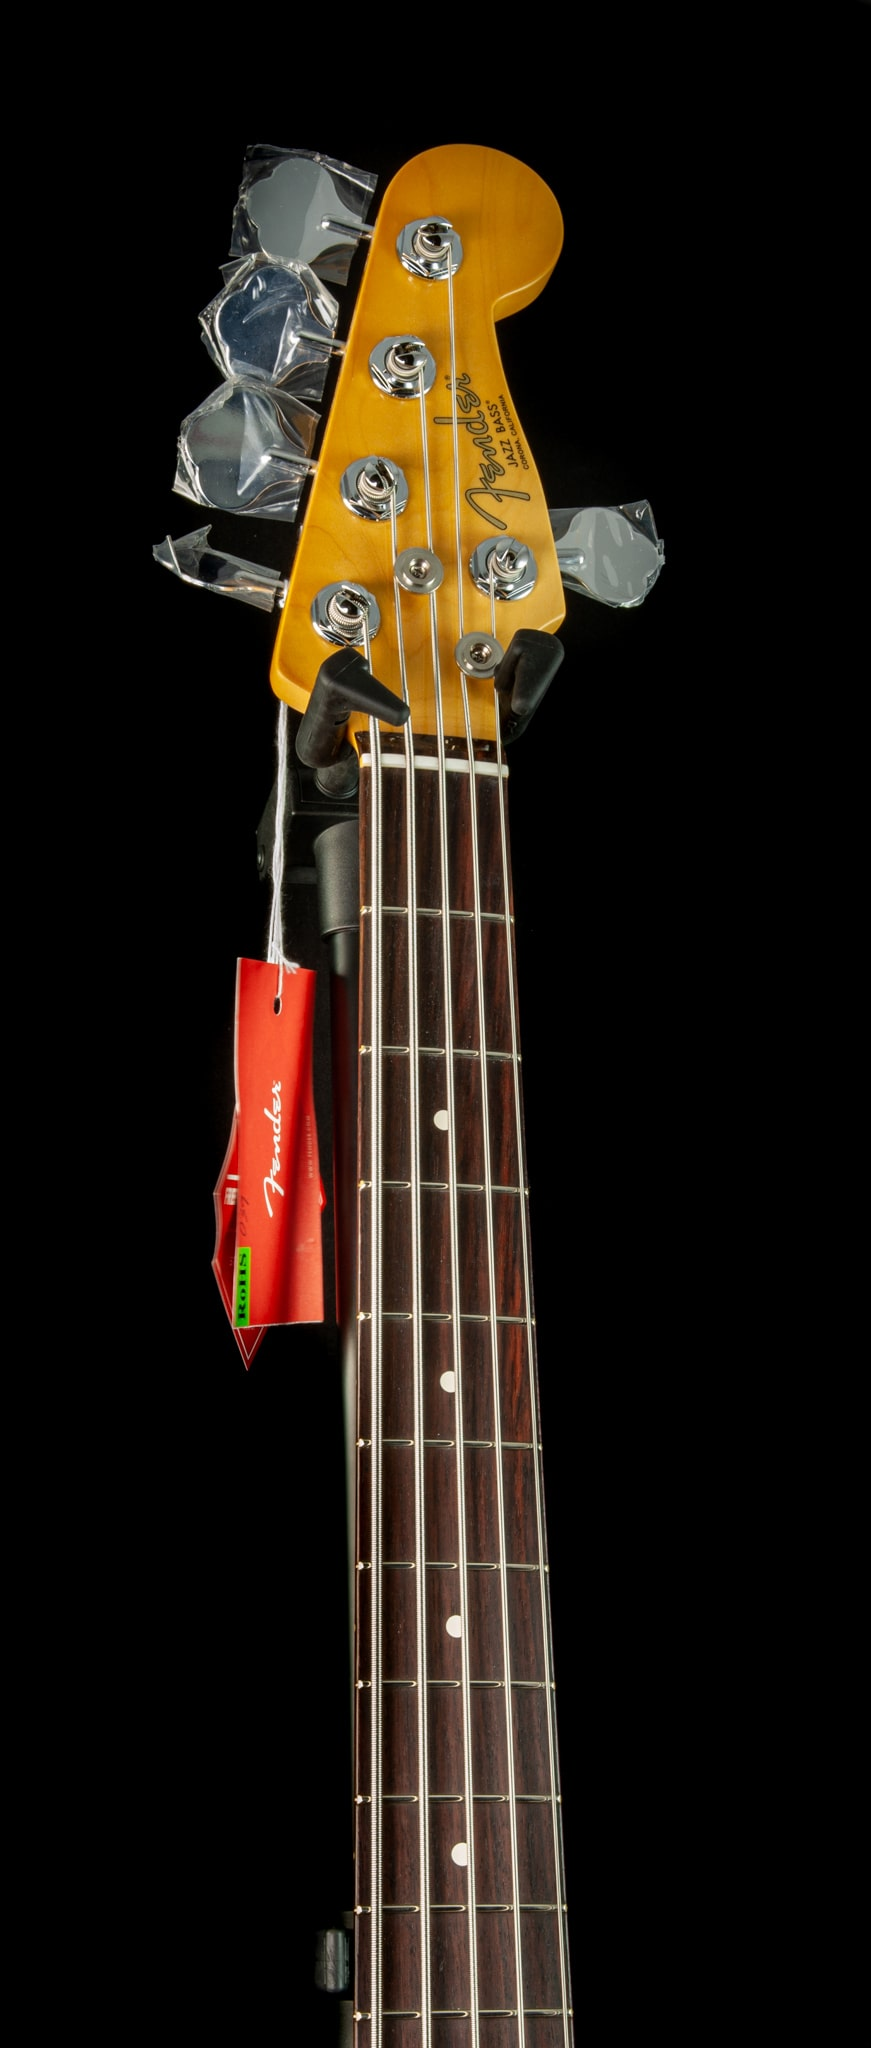 Fender American Professional II Jazz Bass V in Olympic White